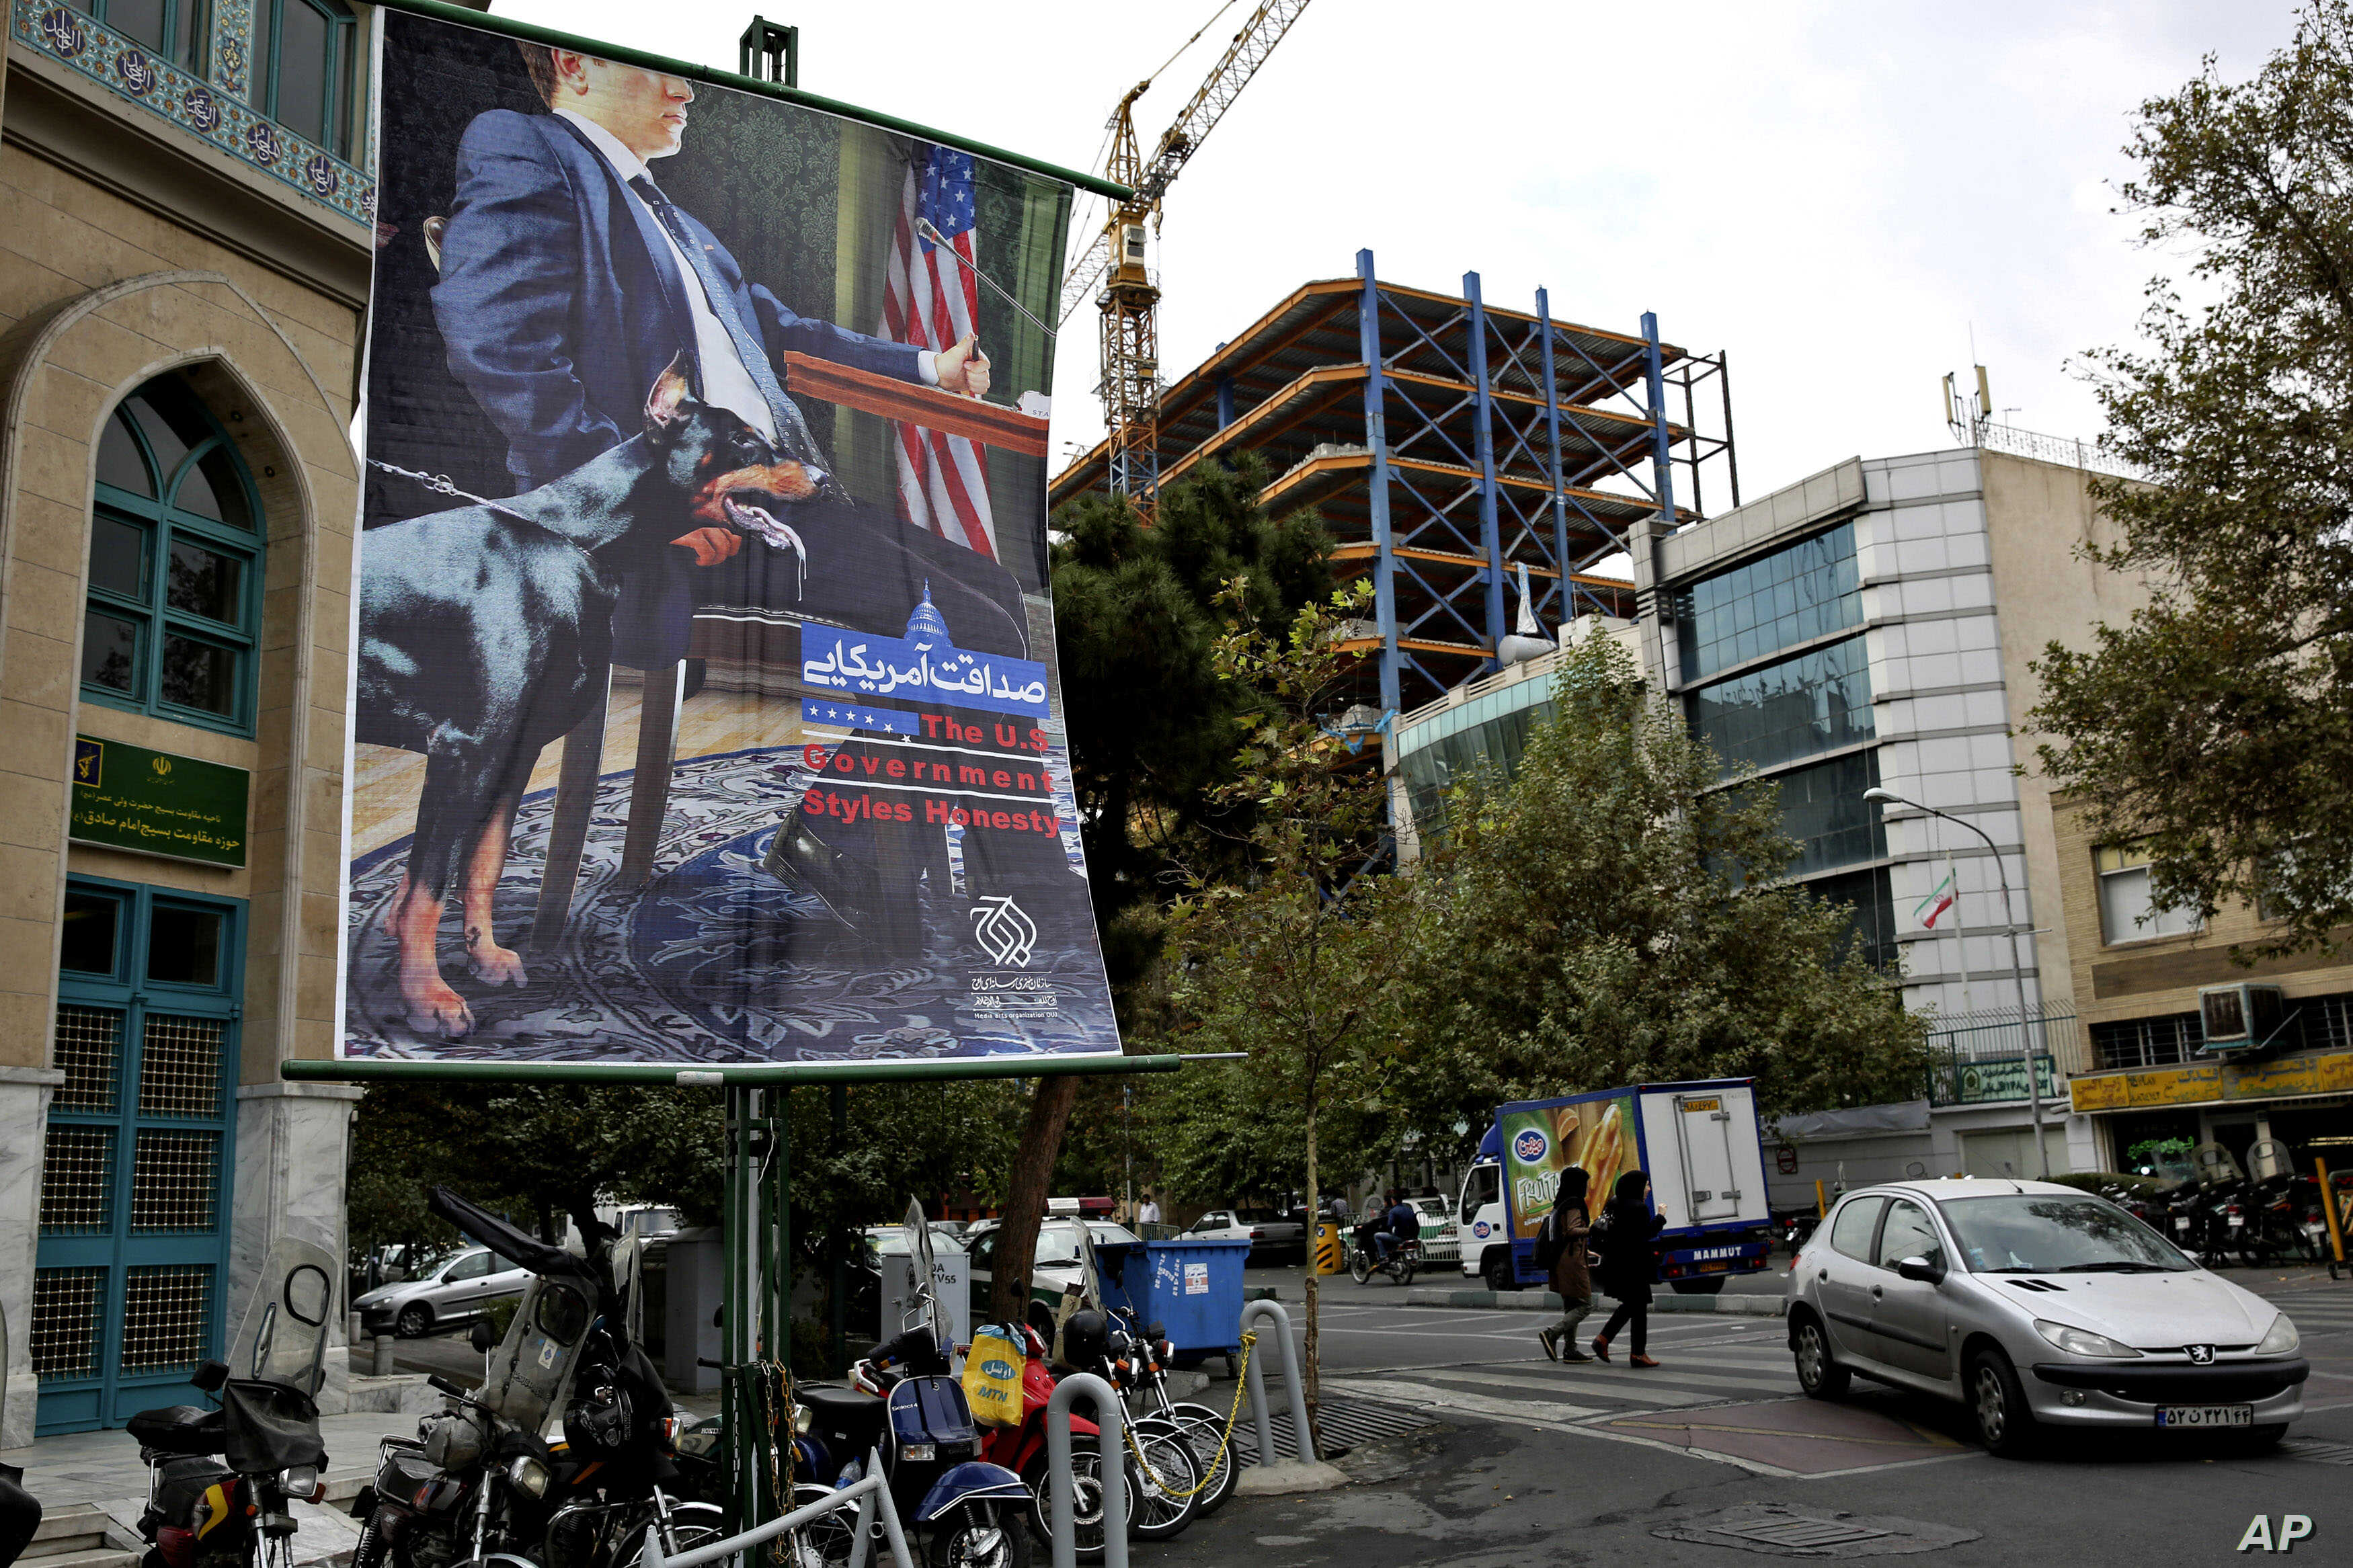 Iran Takes Down New Anti-American Billboards in Tehran